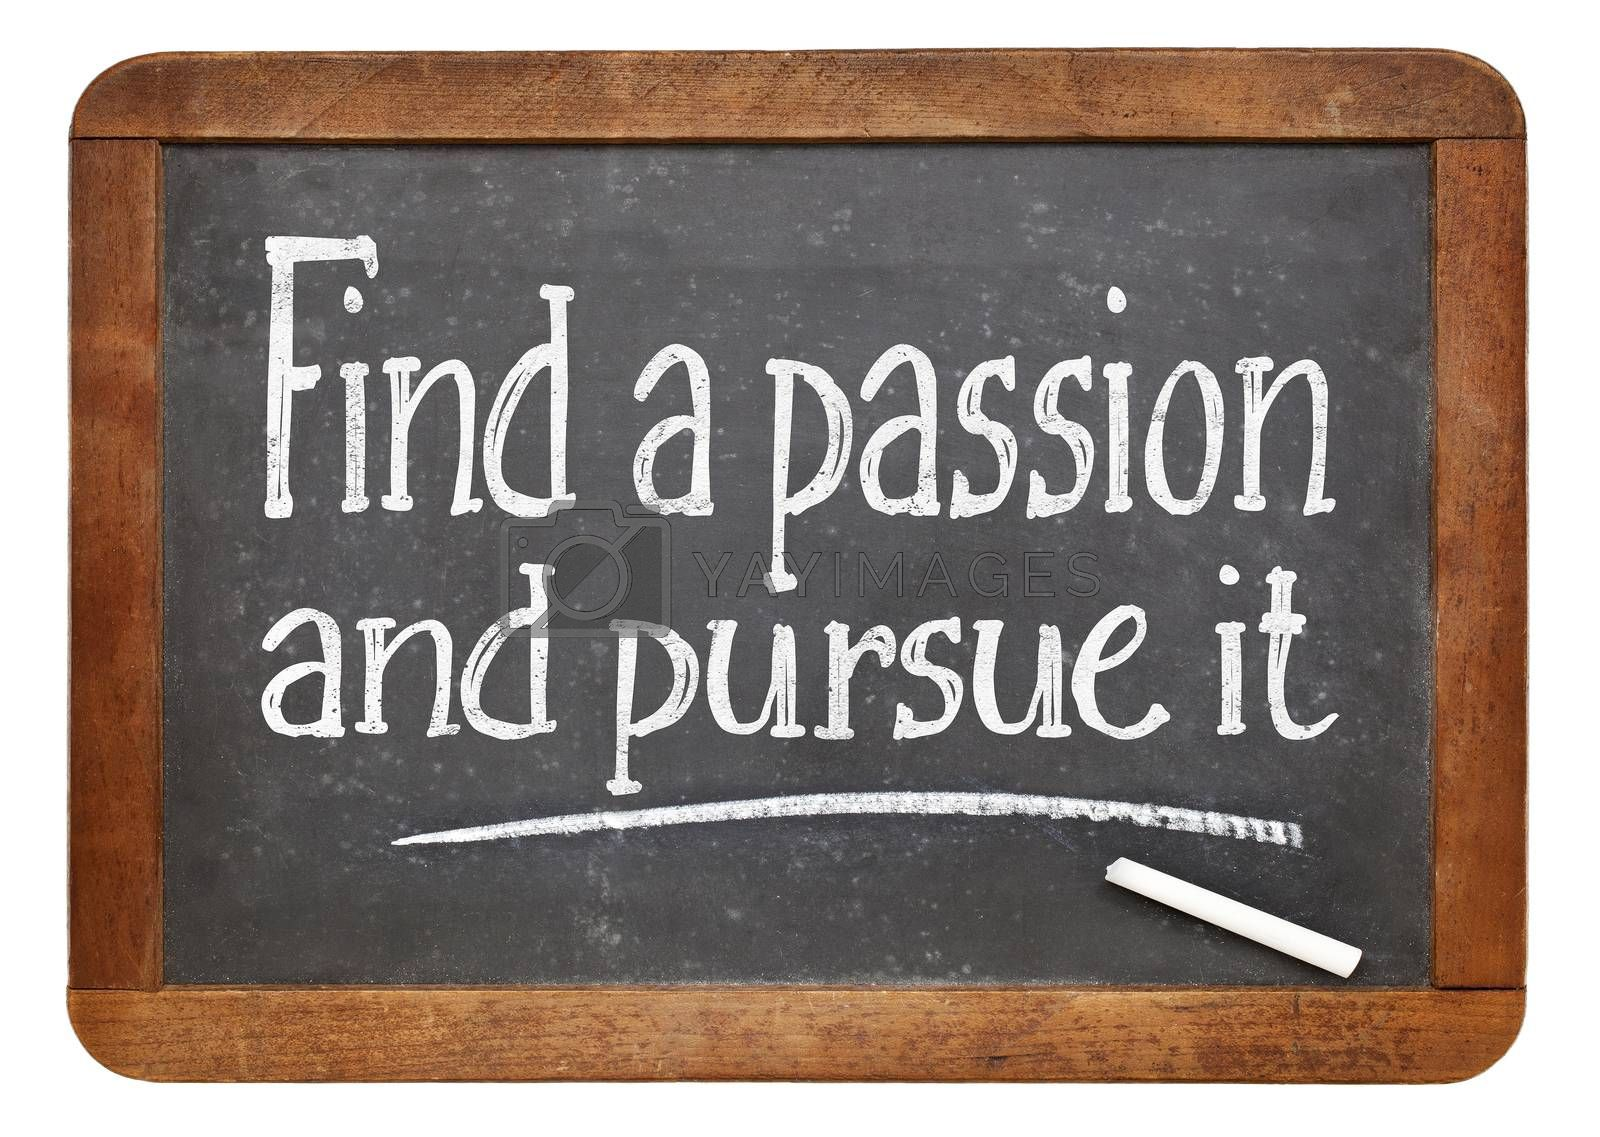 Find a passion and pursue it - motivational advice on a vintage slate blackboard